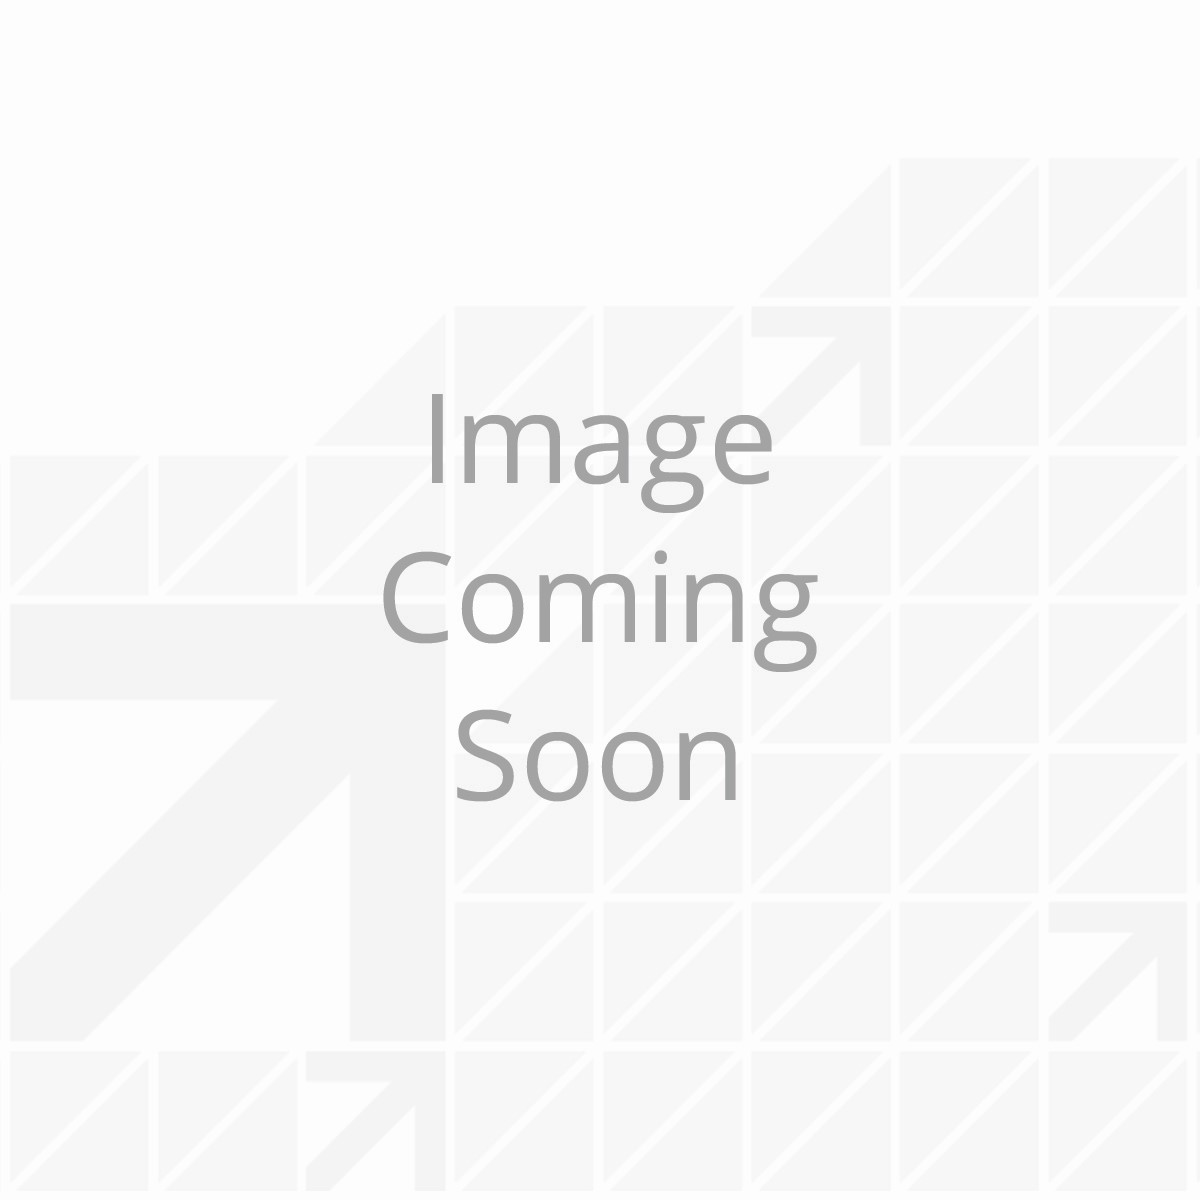 Touch Pad Auto Control (140-1226)